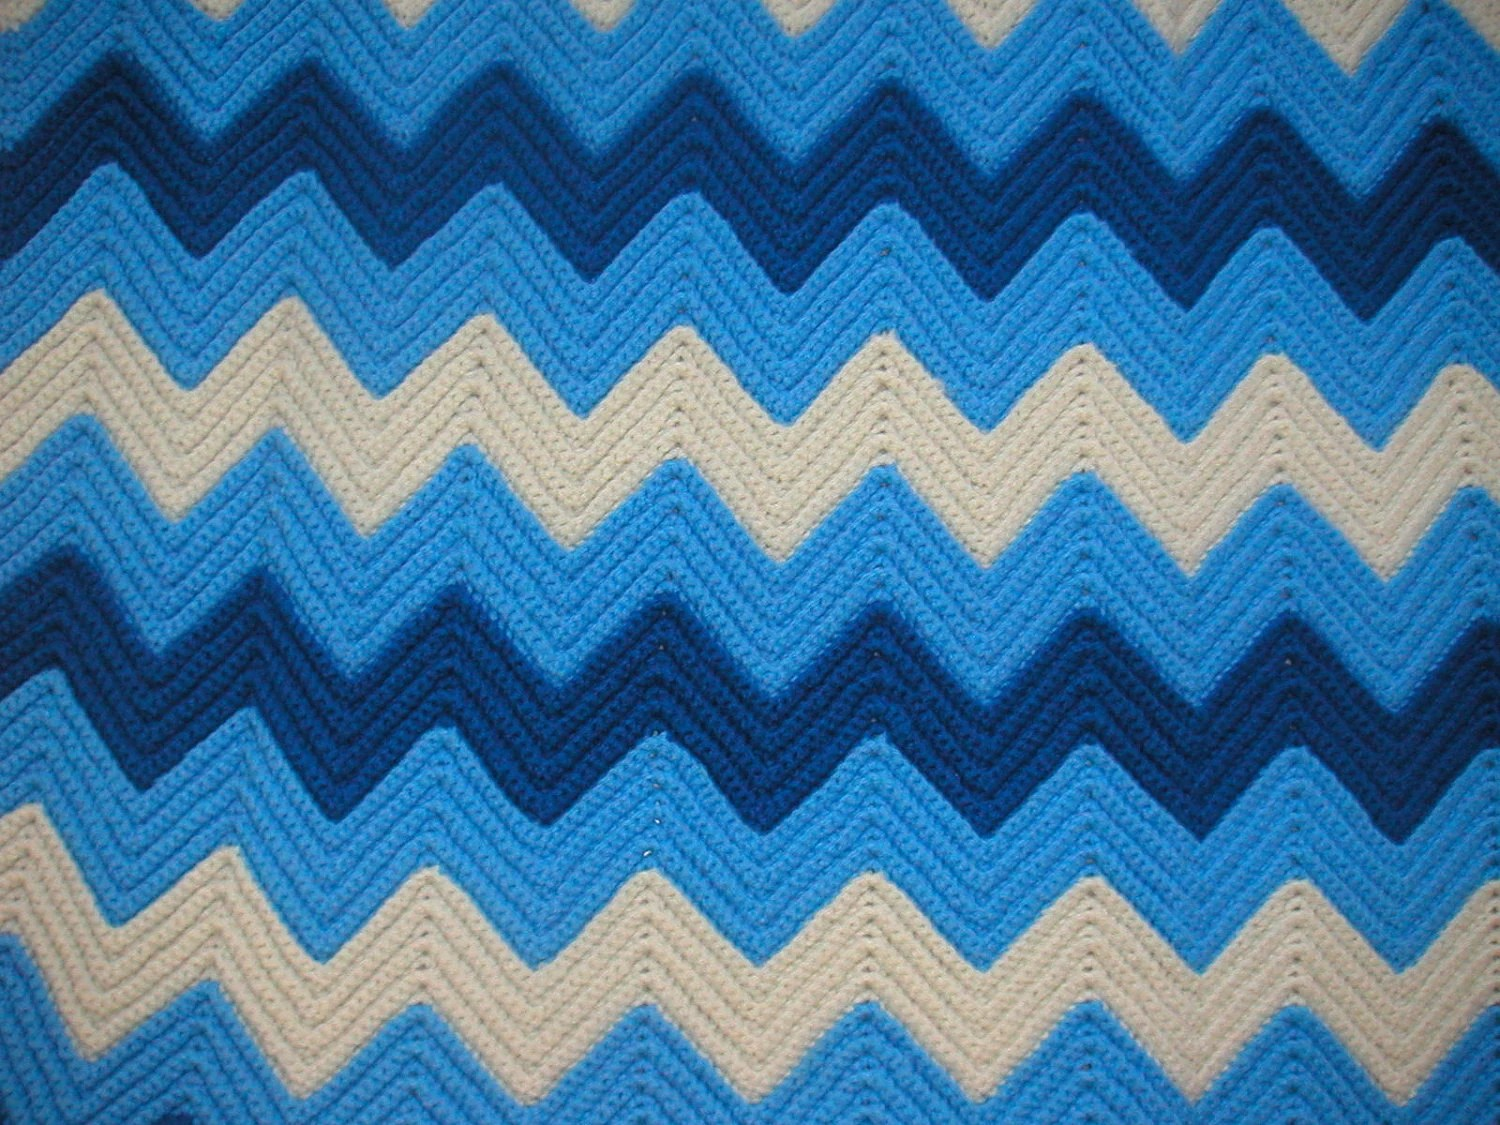 Ripple Crochet Afghan - cobalt blue, yarn, blanket, coverlet, cream, dark blue, zig zag, throw, navy